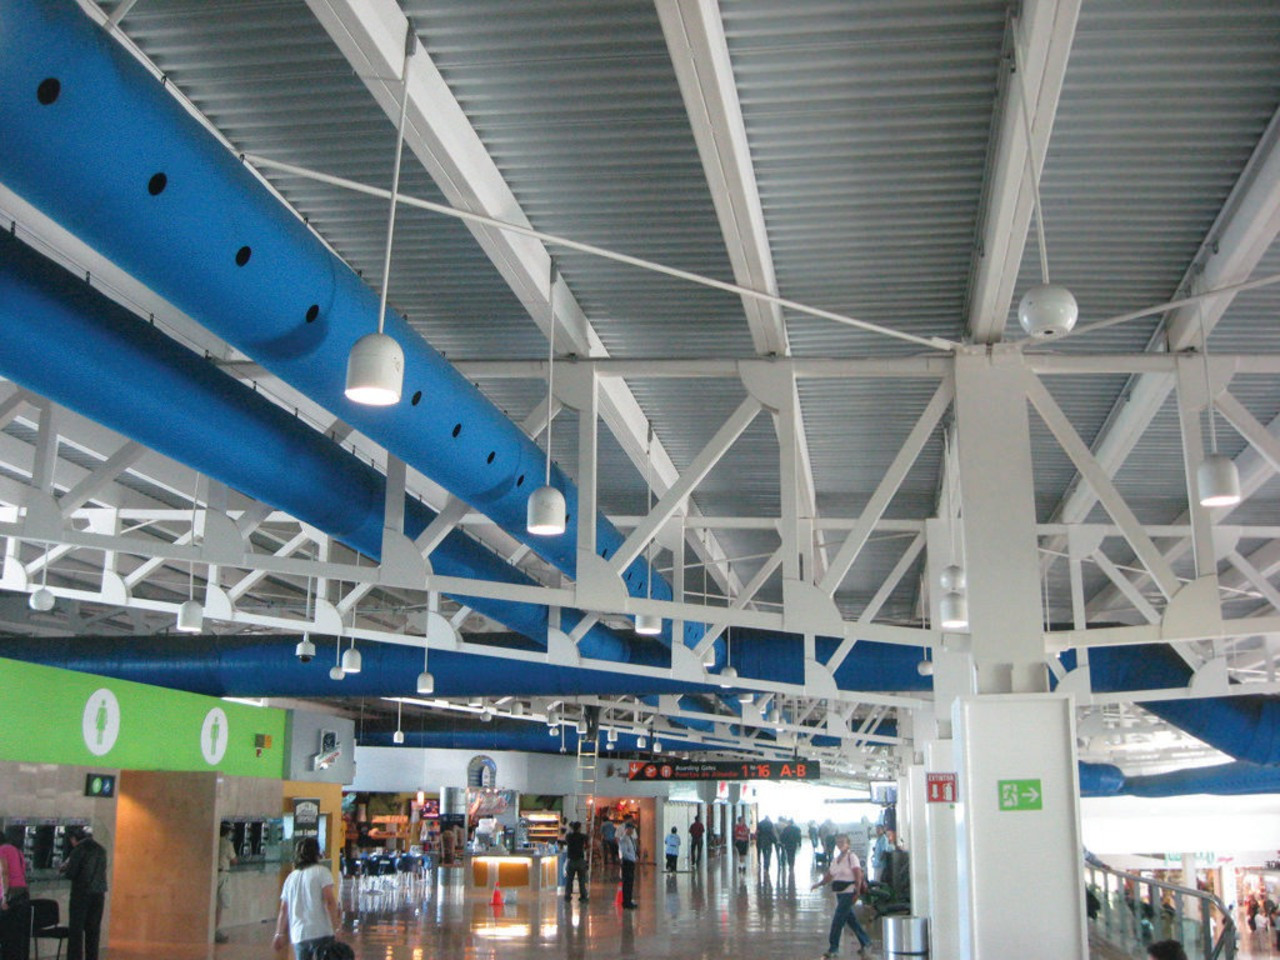 This DuctSox Fabric Air Dispersion System, seen here airport, airport terminal, ceiling, structure, gray